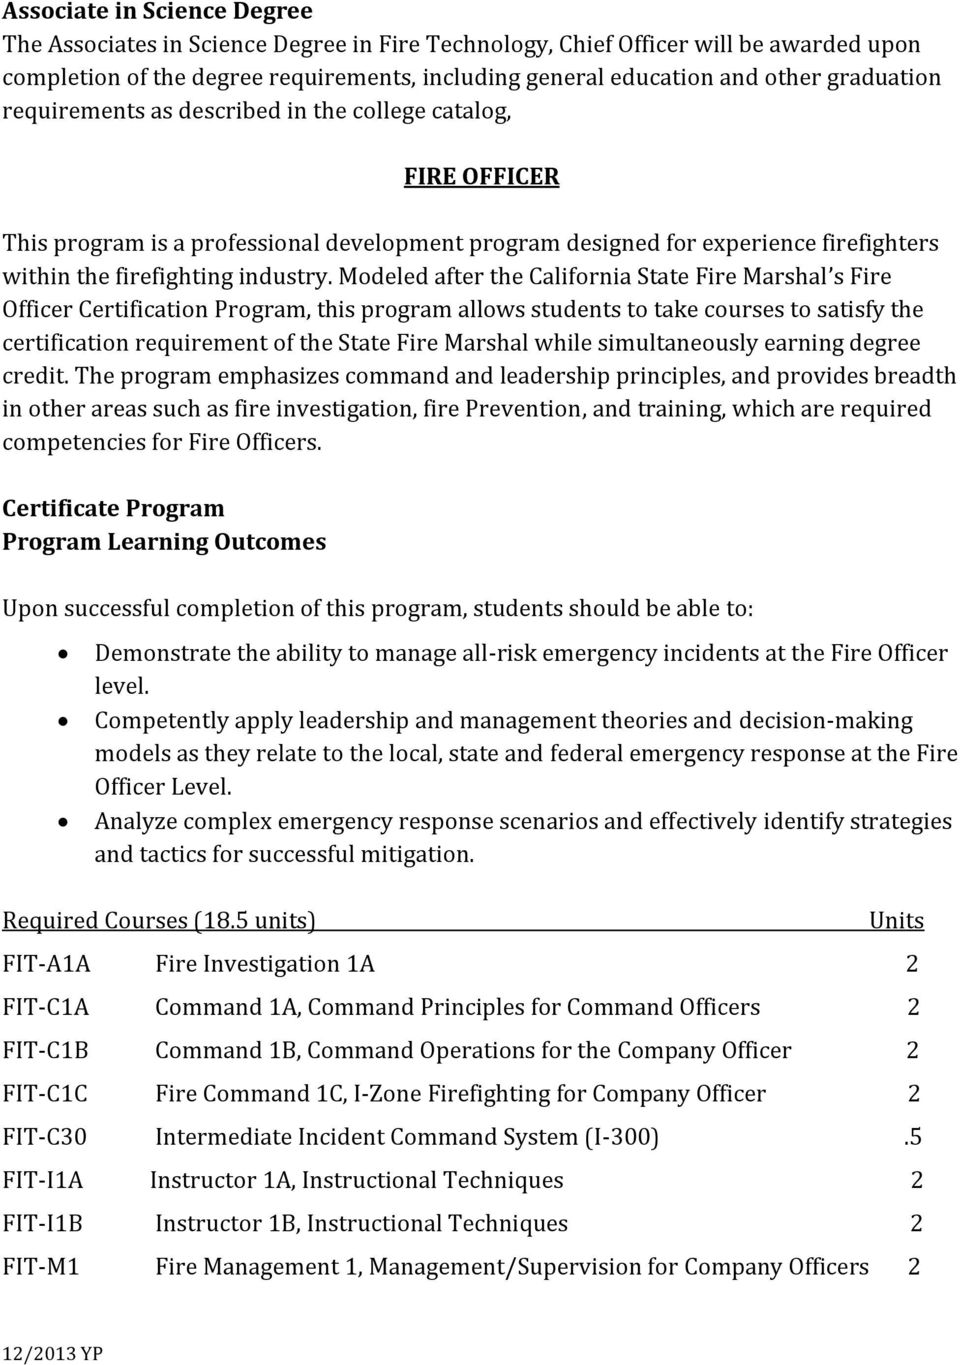 Modeled after the California State Fire Marshal s Fire Officer Certification Program, this program allows students to take courses to satisfy the certification requirement of the State Fire Marshal